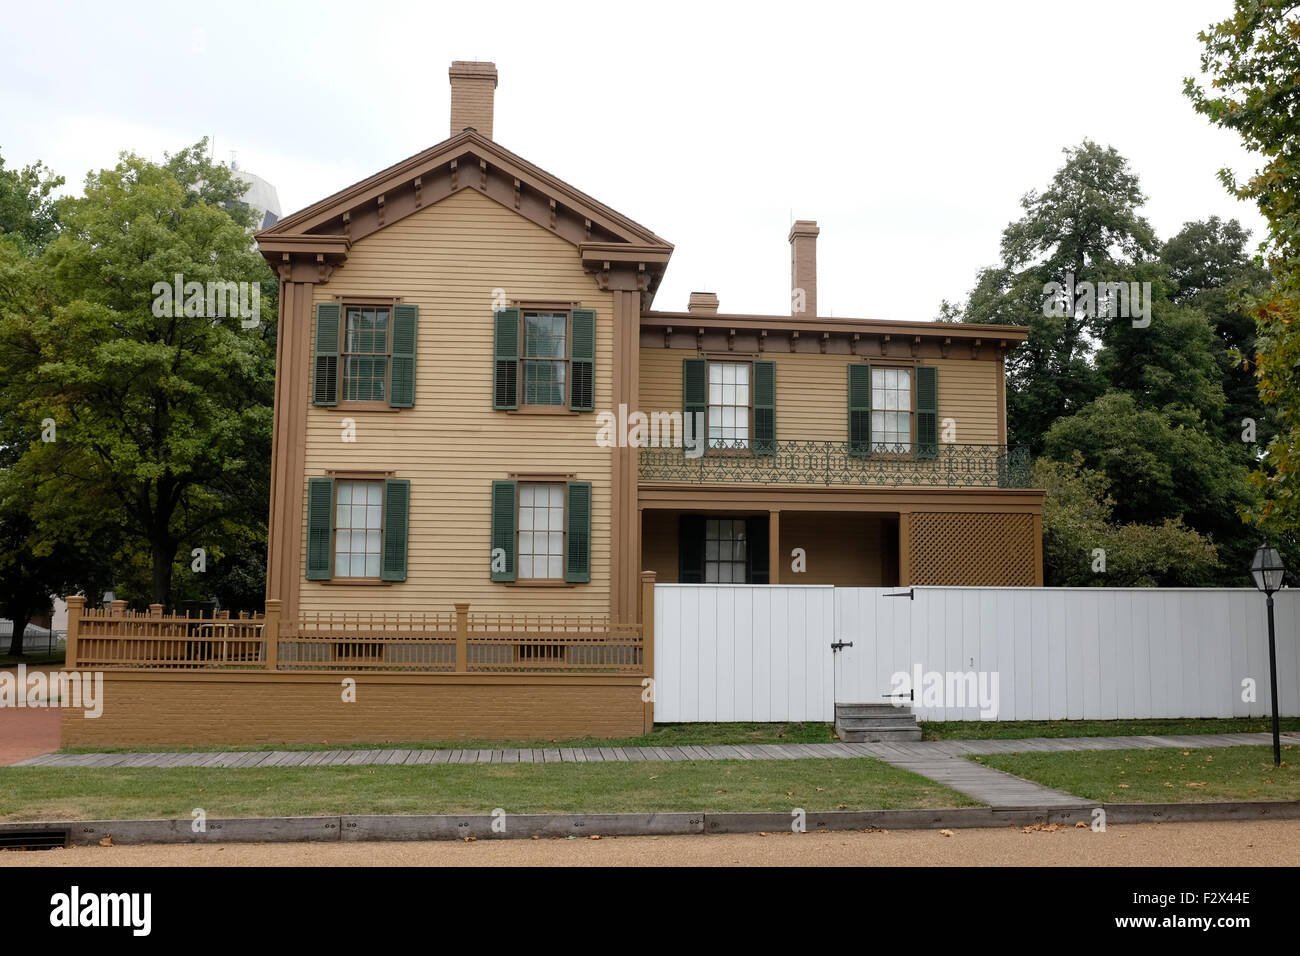 Abraham Lincoln's home, Springfield, Illinois - Stock Image